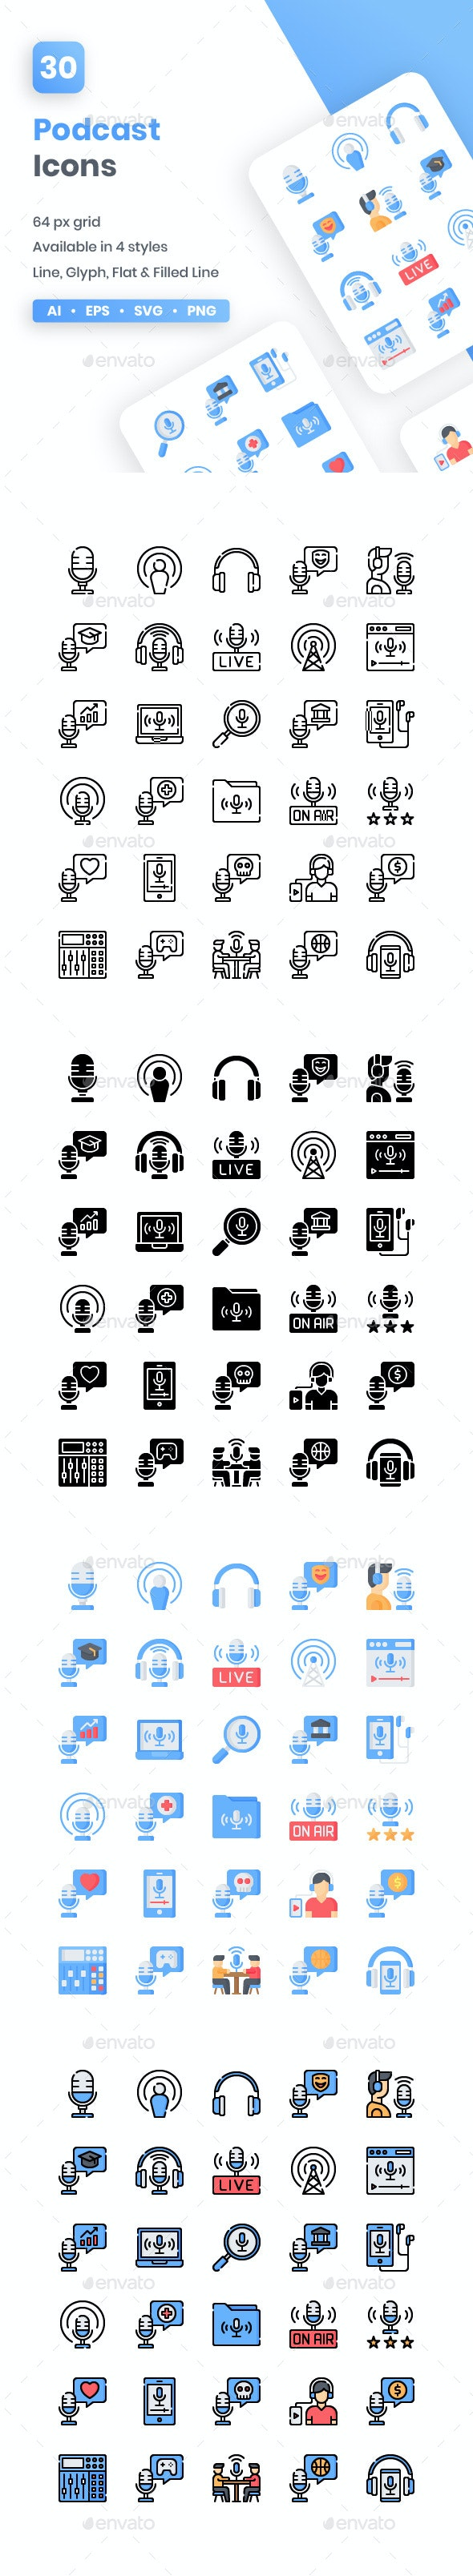 Podcast Icons - Media Icons